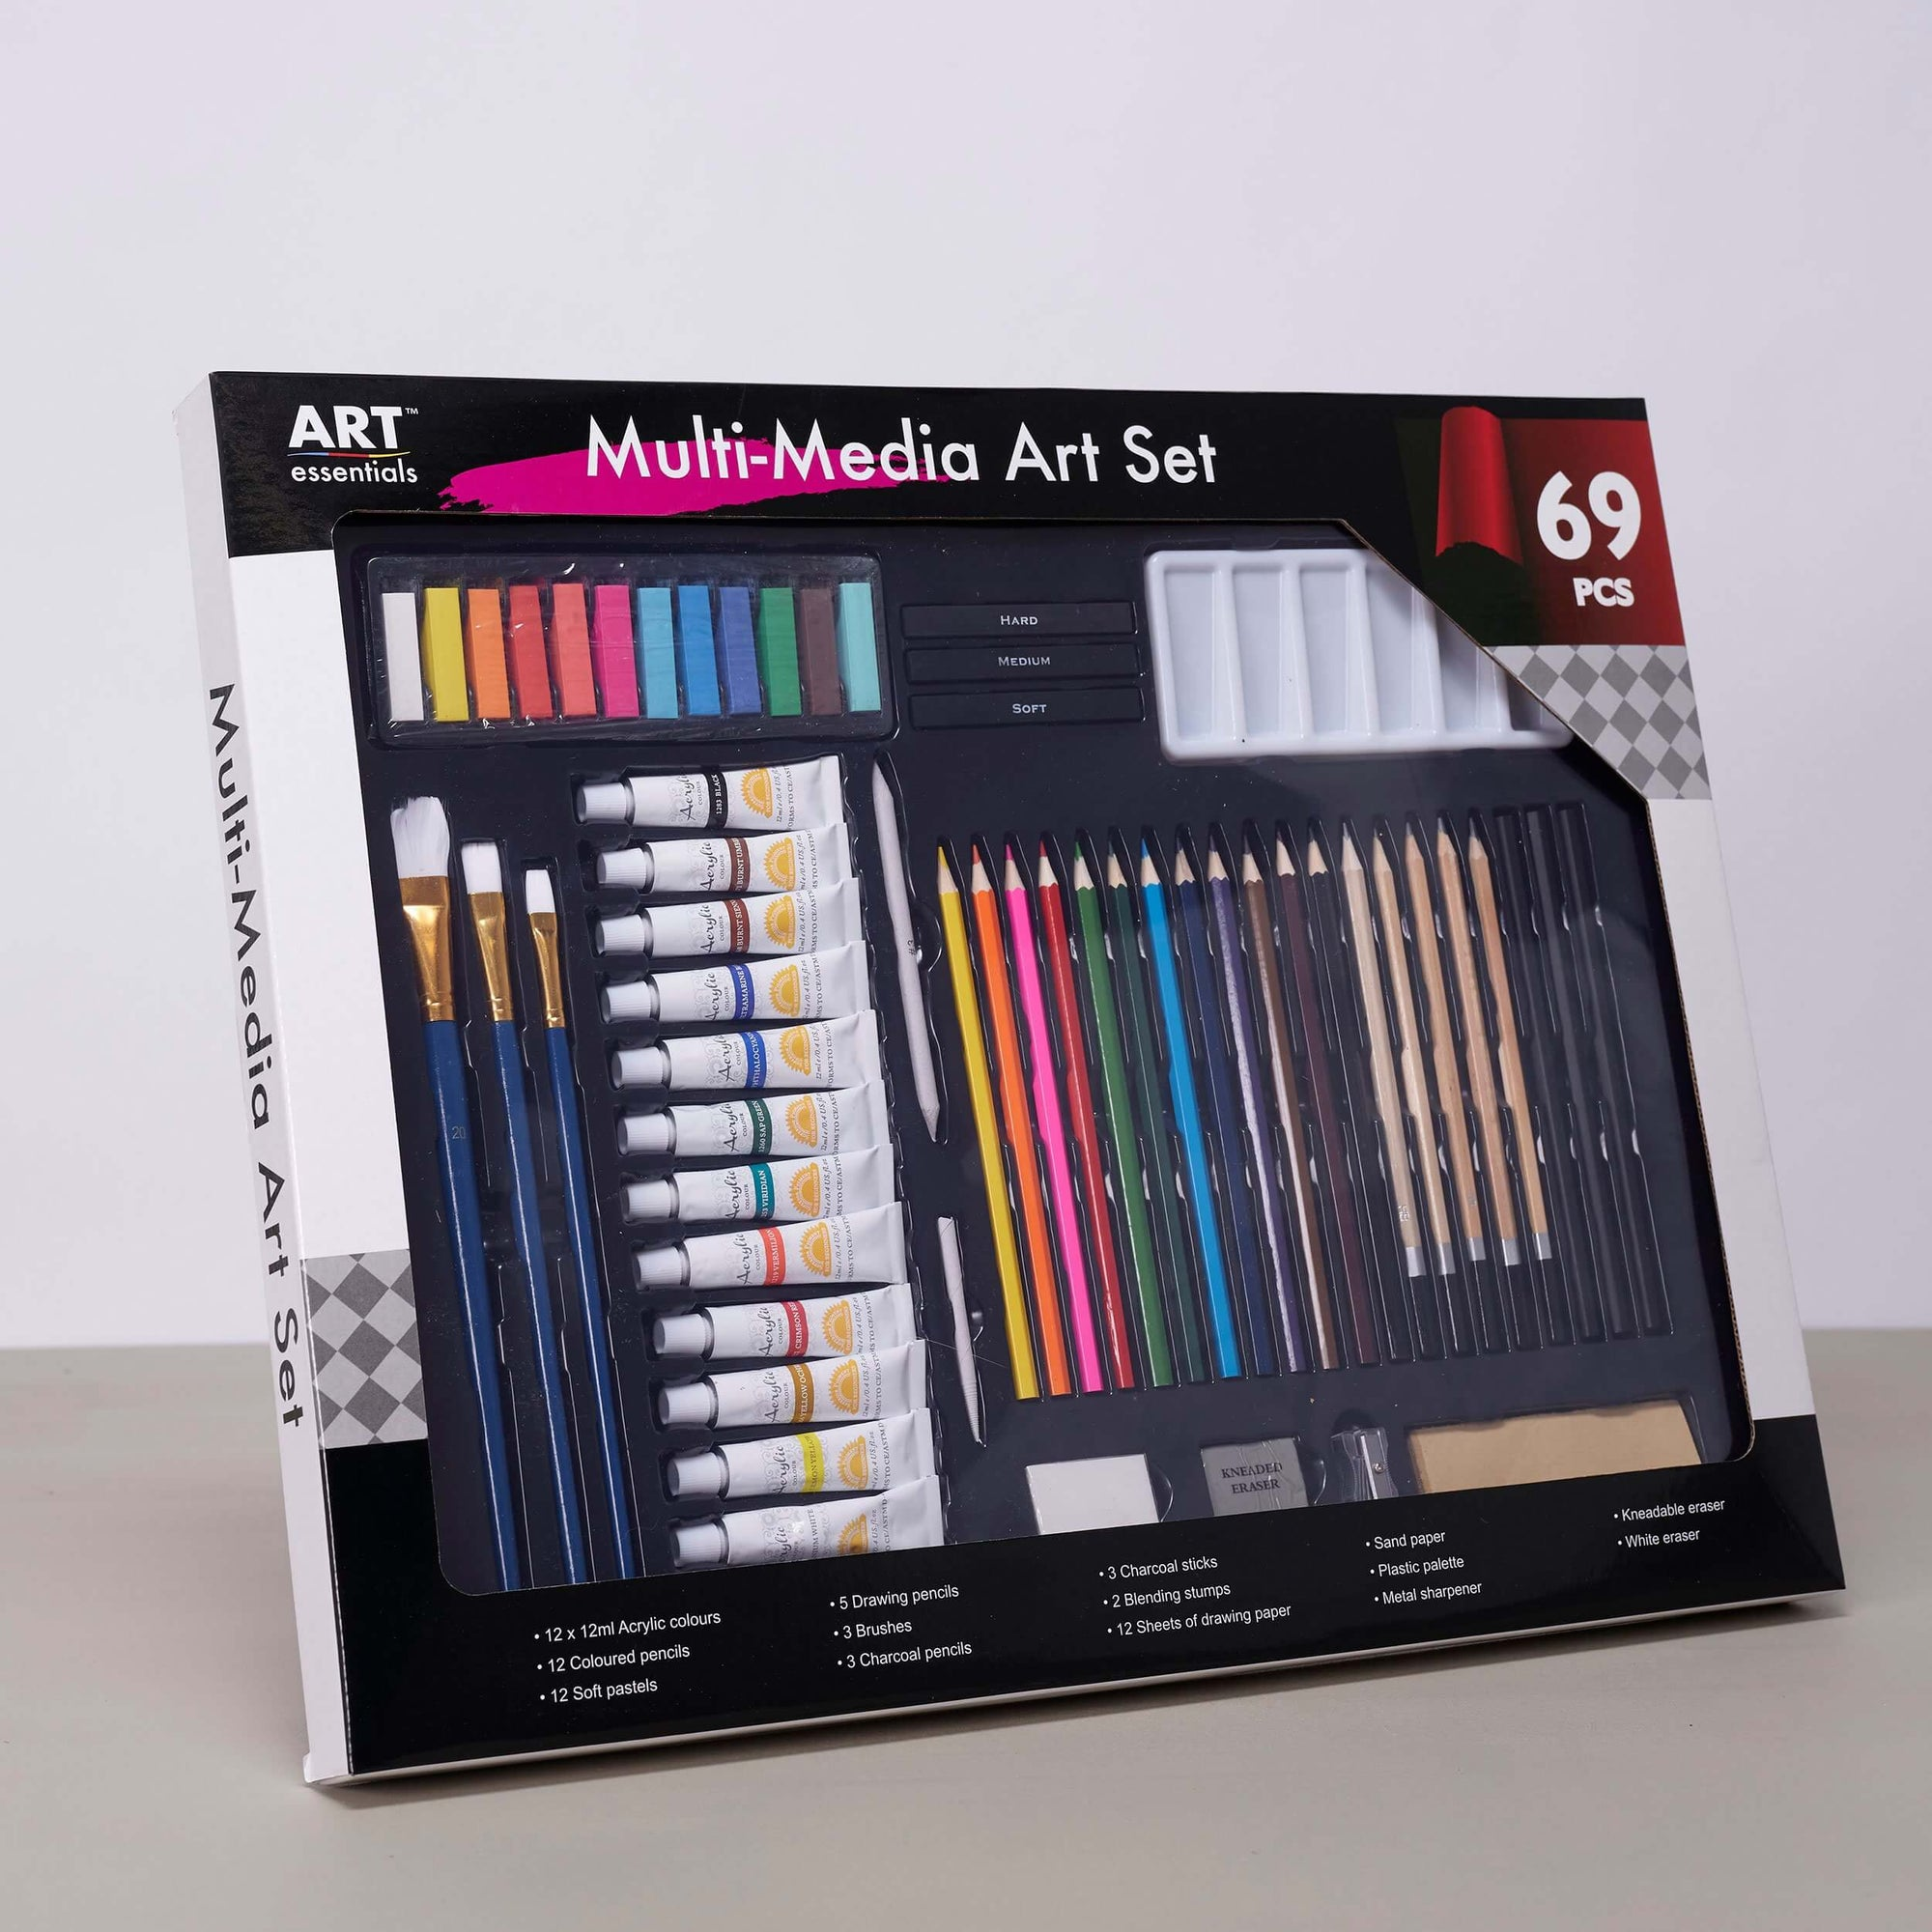 ART essentials Mixed Media Art Set - 69 Pieces